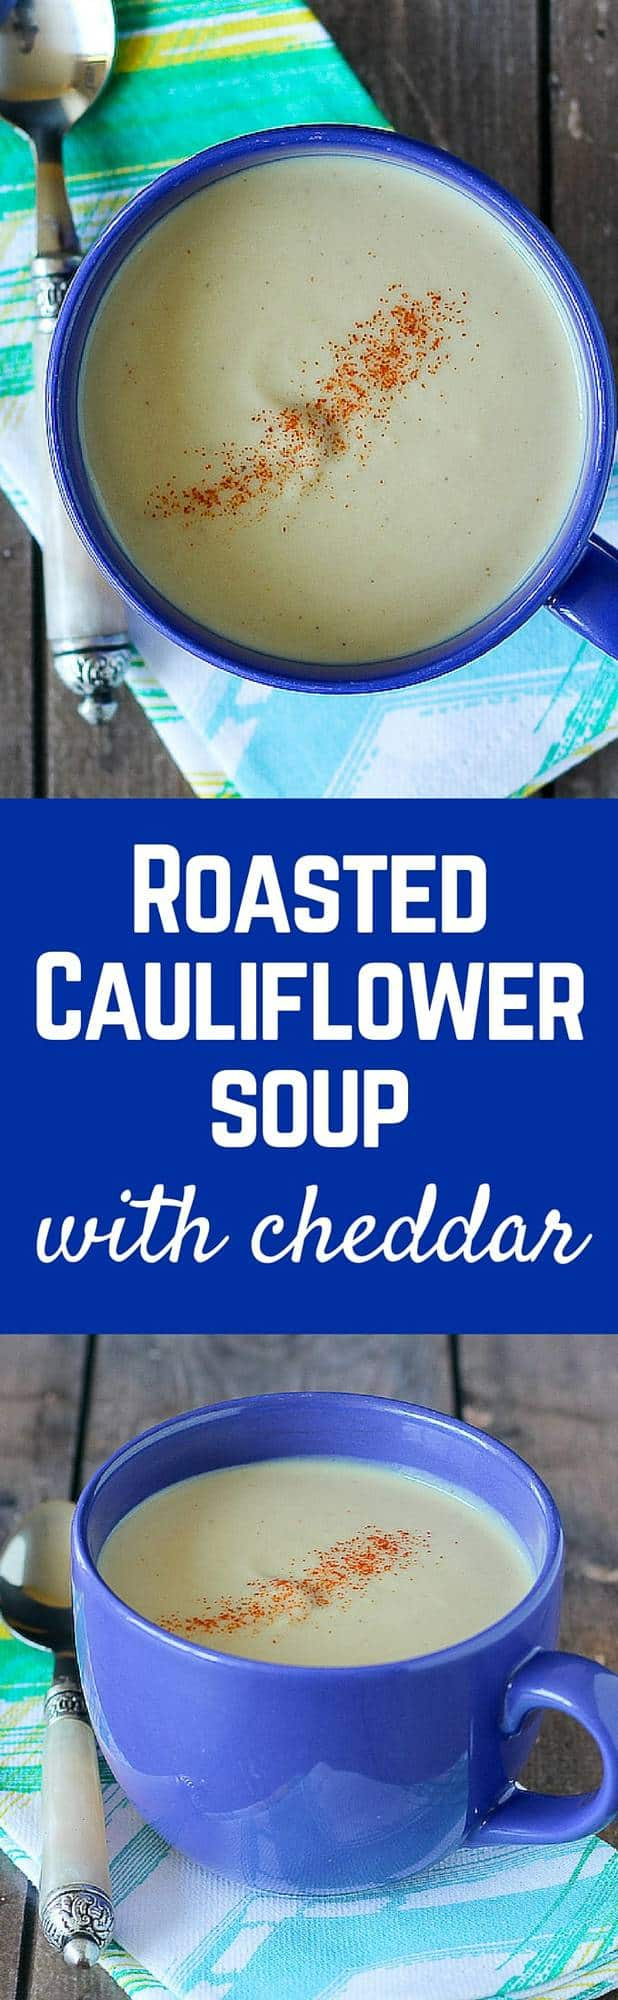 This cauliflower soup is a perfect weeknight meal when you're craving a bowl of creamy soup. The sharp cheddar adds great flavor and extra creaminess. Get the recipe on RachelCooks.com!